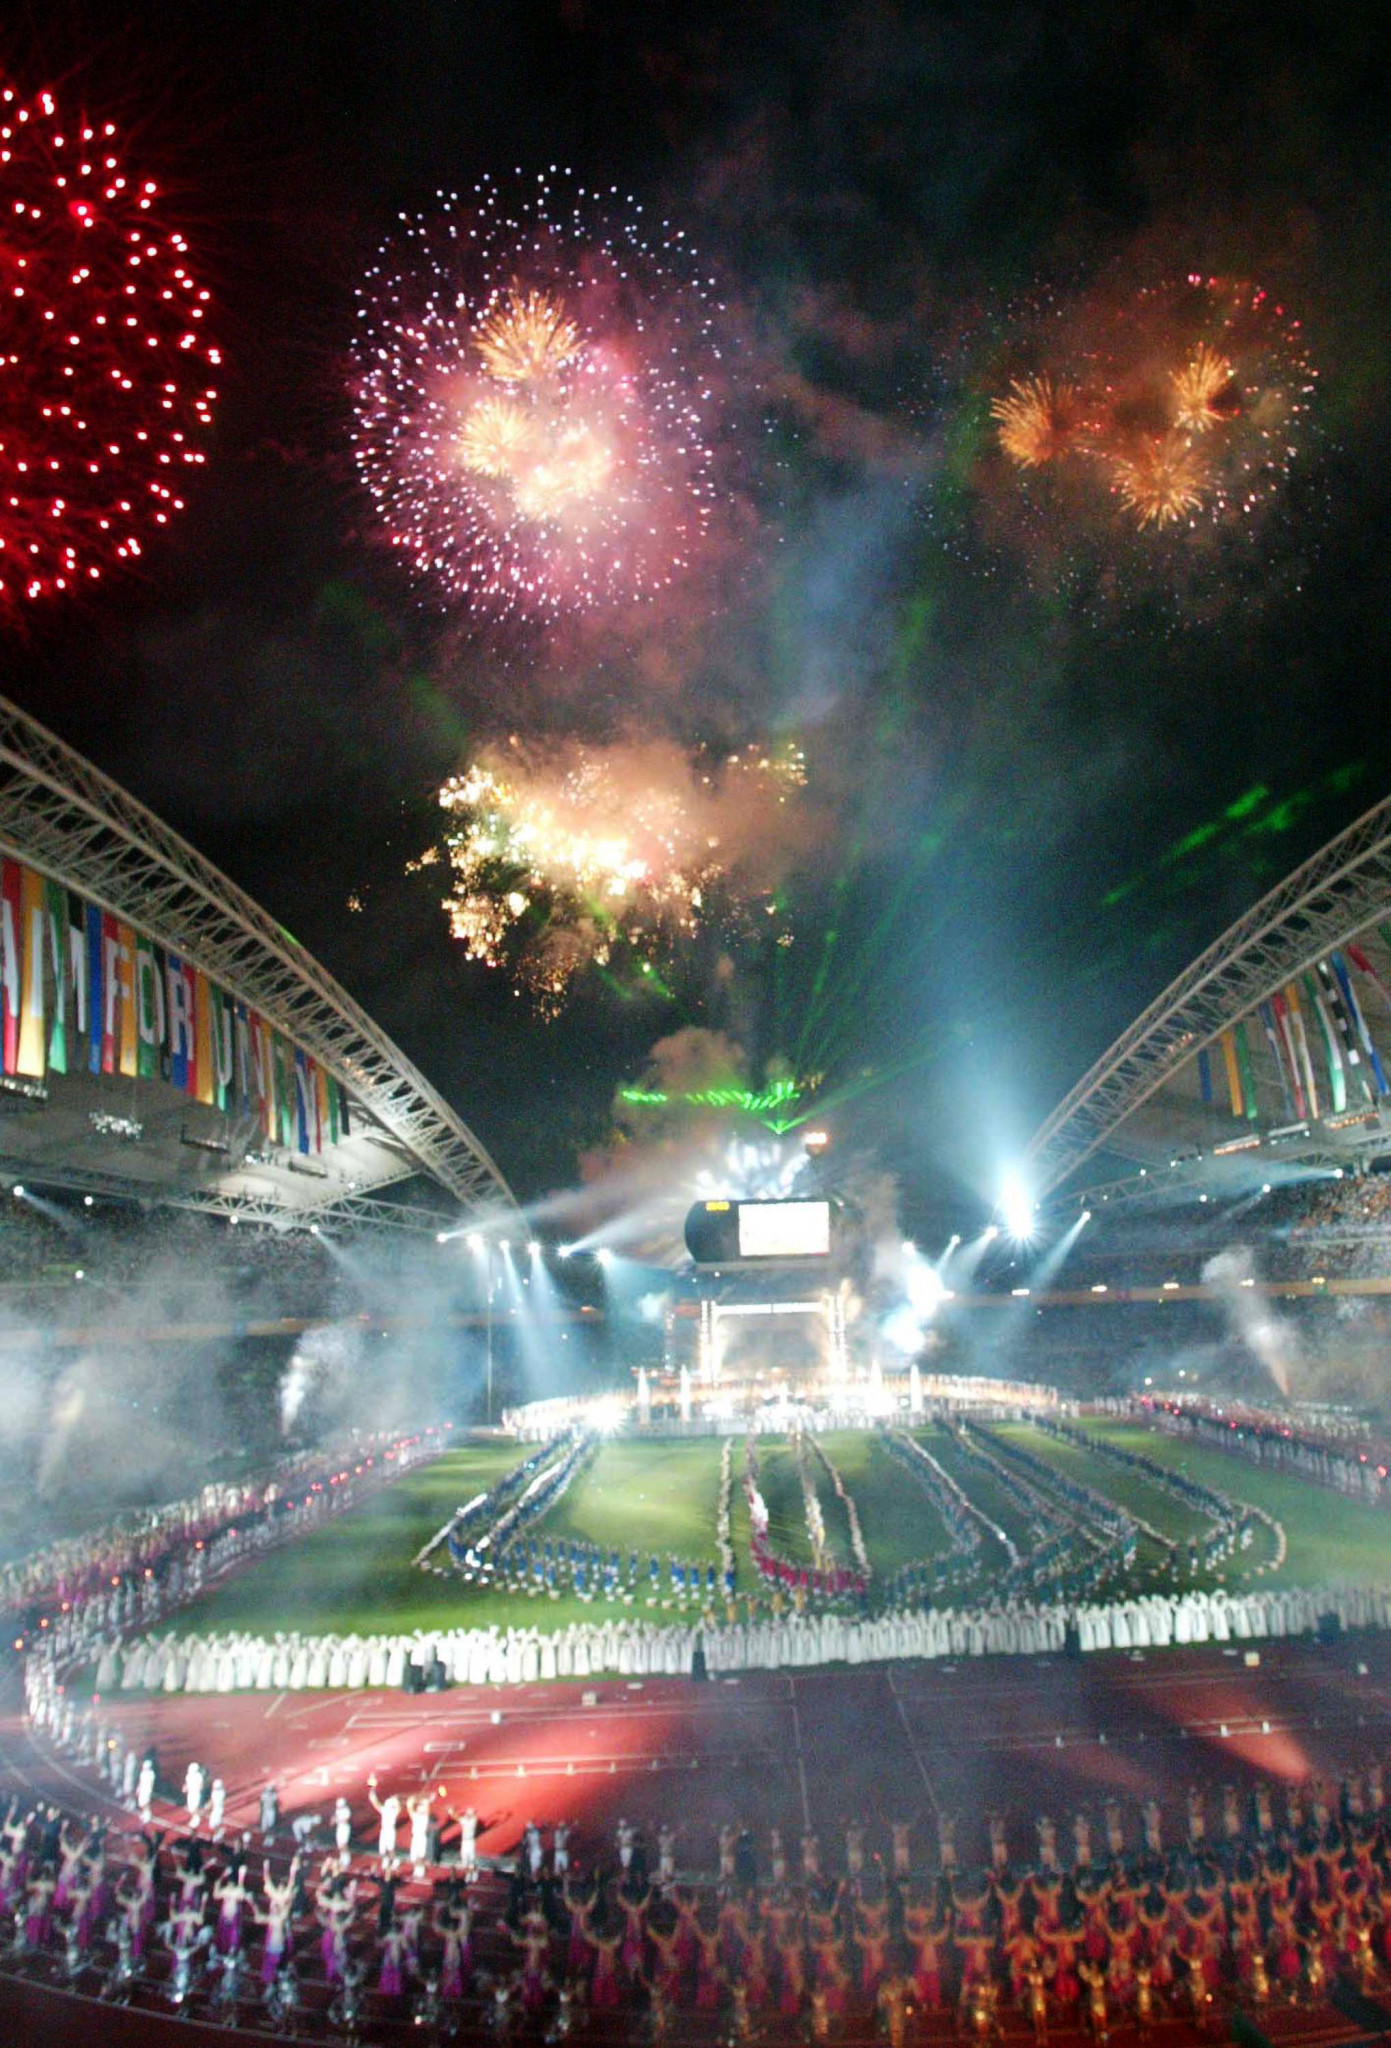 Fireworks explode during the opening ceremony of the 22nd Summer Universiade Games August 21, 2003 in Daegu, South Korea. ©Chung Sung-Jun/Getty Images